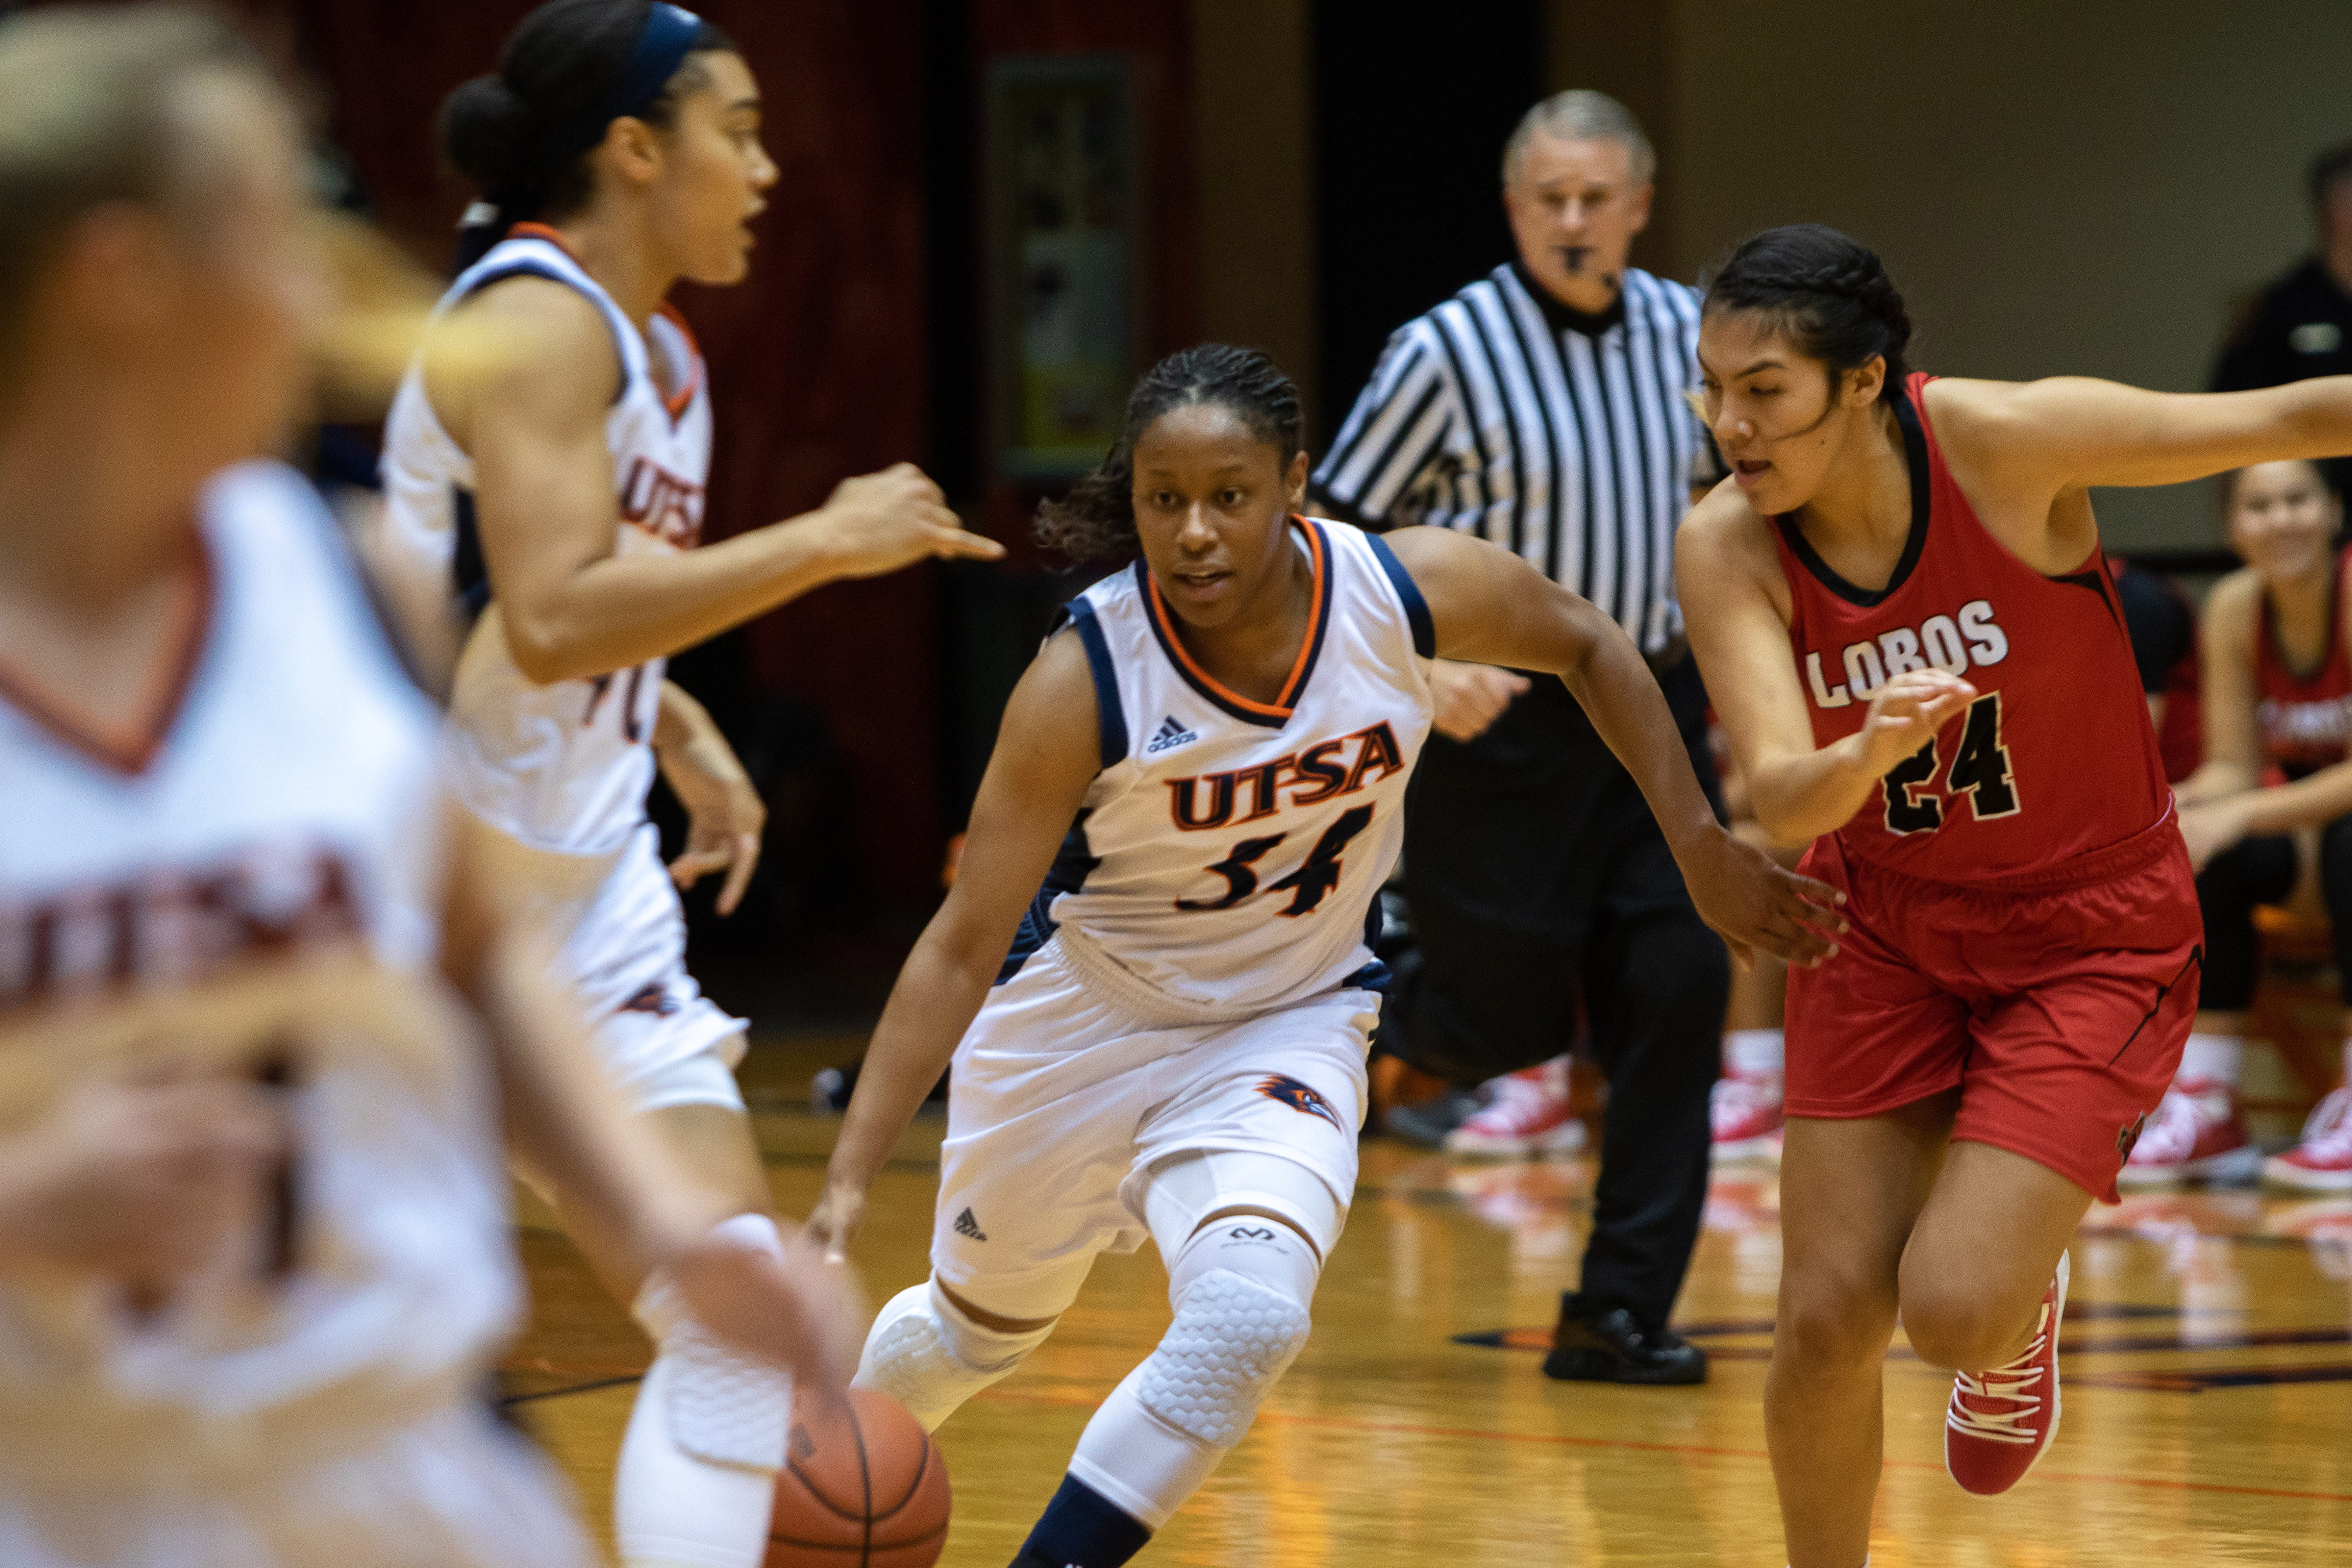 Guard Karrington Donald races her way past several defenders in a game against Sul Ross State.